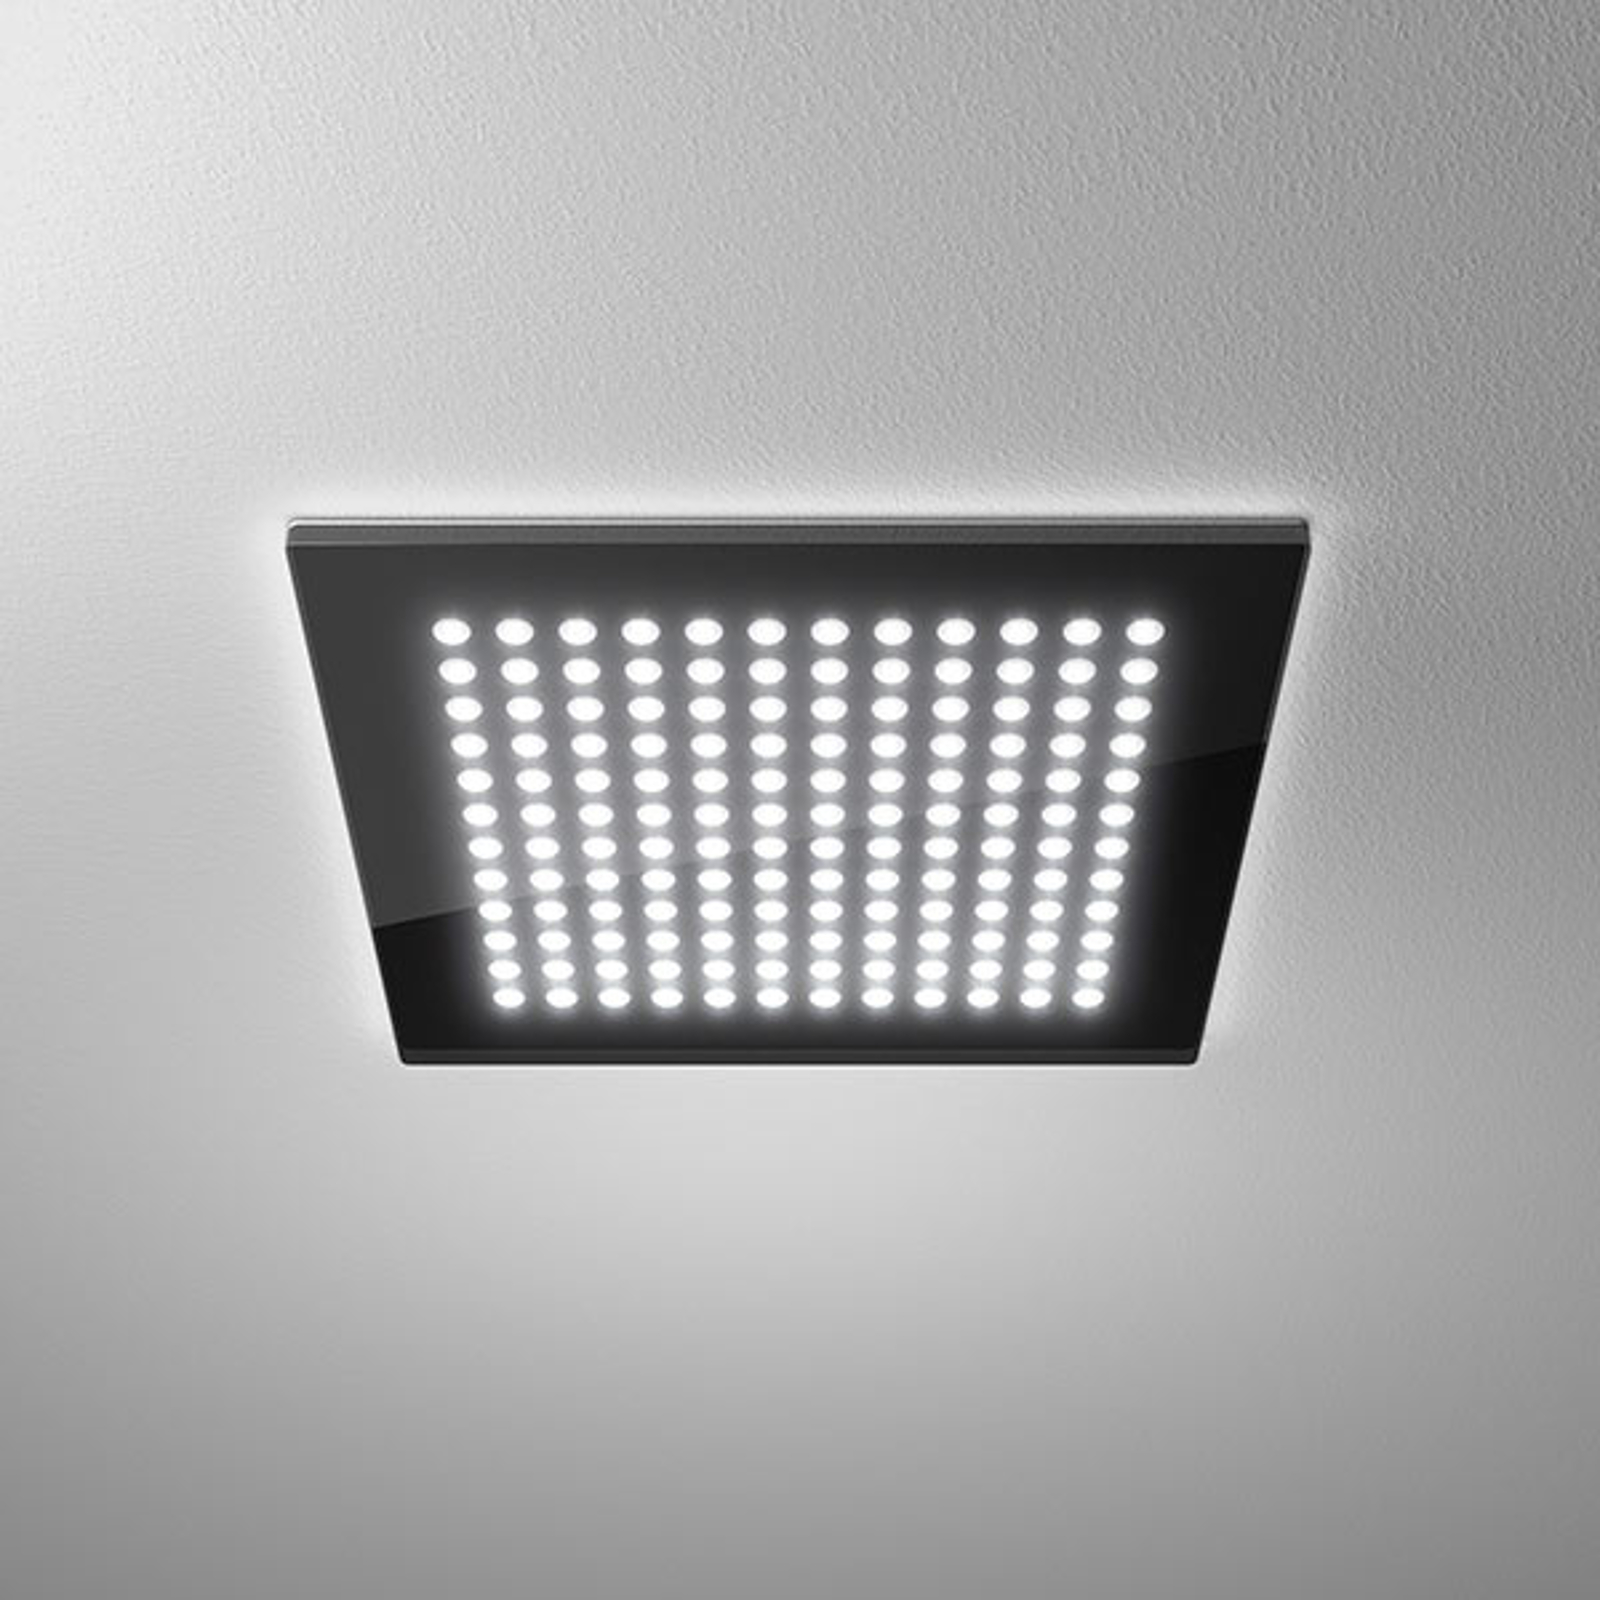 LED downlight Domino Flat Square, 26 x 26 cm, 22 W